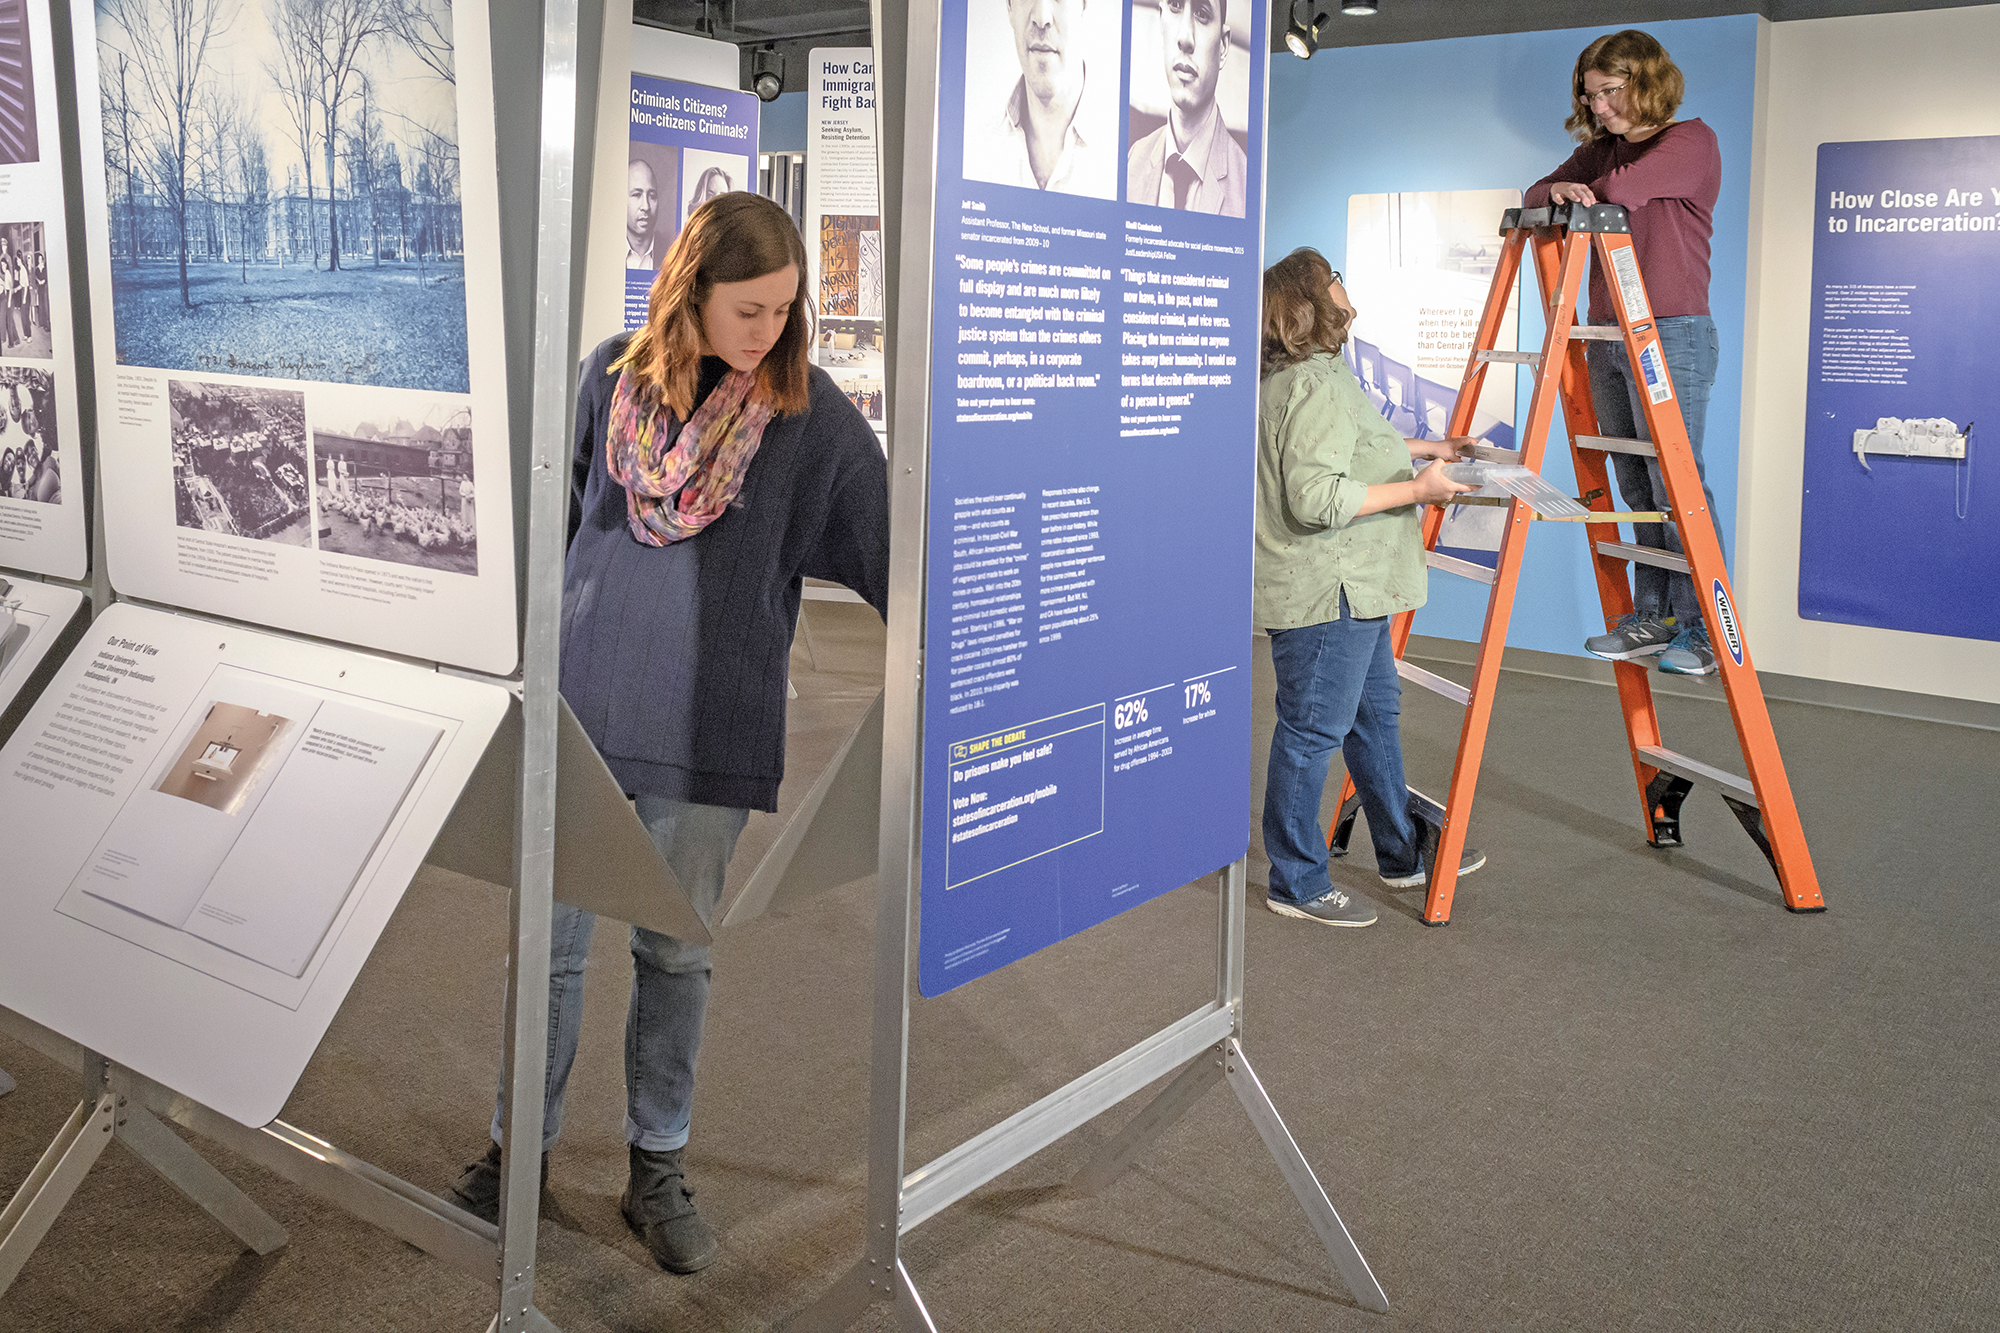 """Last fall, Parsons and graduate students in the museum studies program brought the national """"States of Incarceration"""" exhibition to the International Civil Rights Center & Museum in Greensboro. UNCG and 20 other universities contributed to the traveling exhibit, which explores the roots of mass incarceration. [Photo by Martin Kane]"""